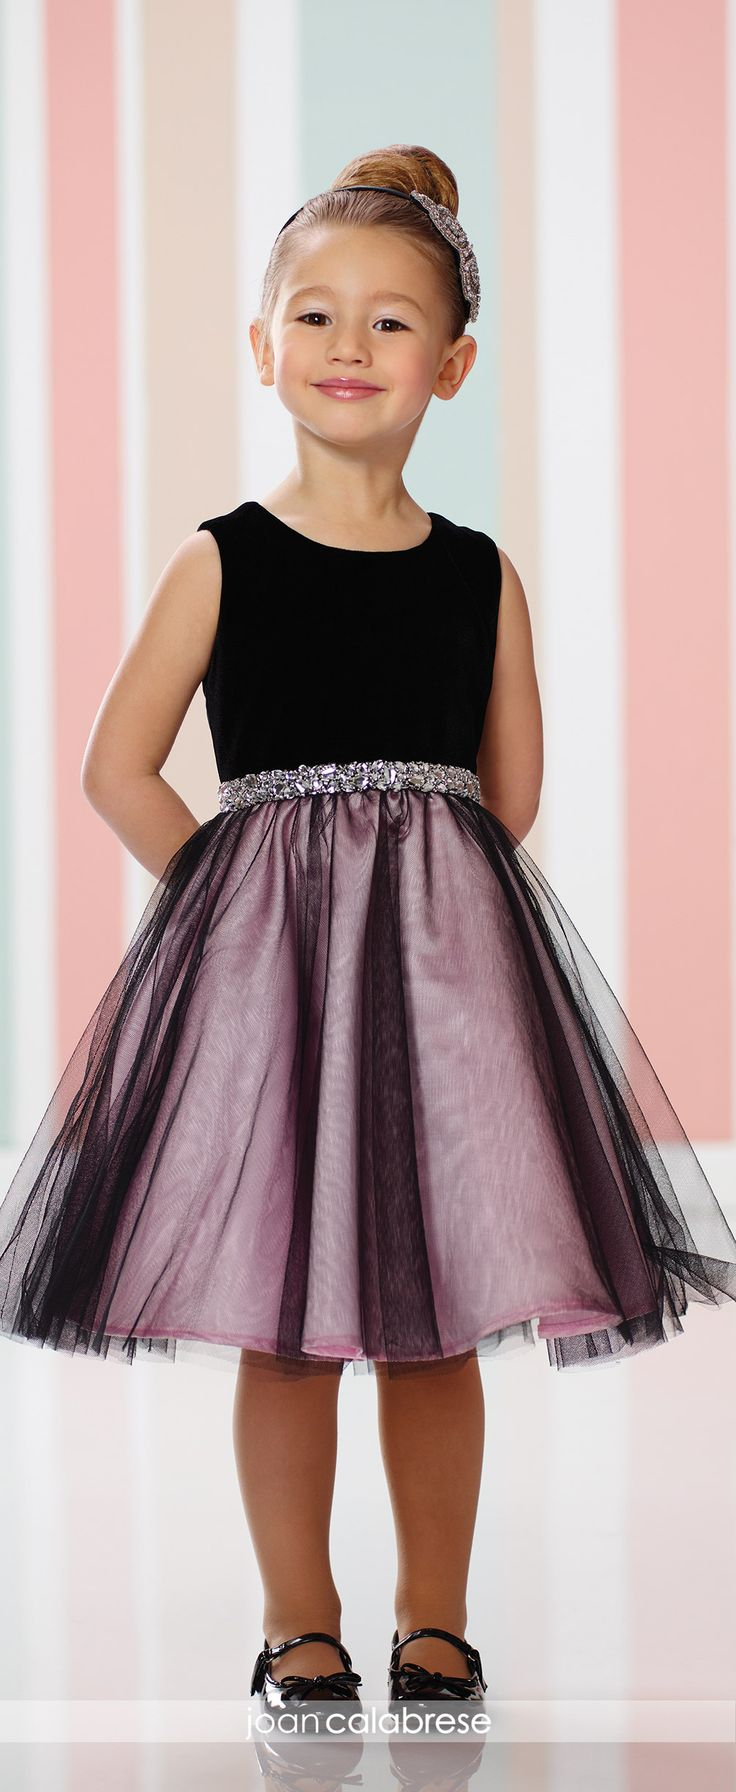 Joan Calabrese for Mon Cheri - 216320 - Sleeveless velvet, tulle and satin knee-length full A-line dress with jewel neckline, velvet bodice with heavily hand-beaded natural waistband, tulle overlay skirt.  Sizes: 2 – 14  Colors: Black/Pink, Navy Blue